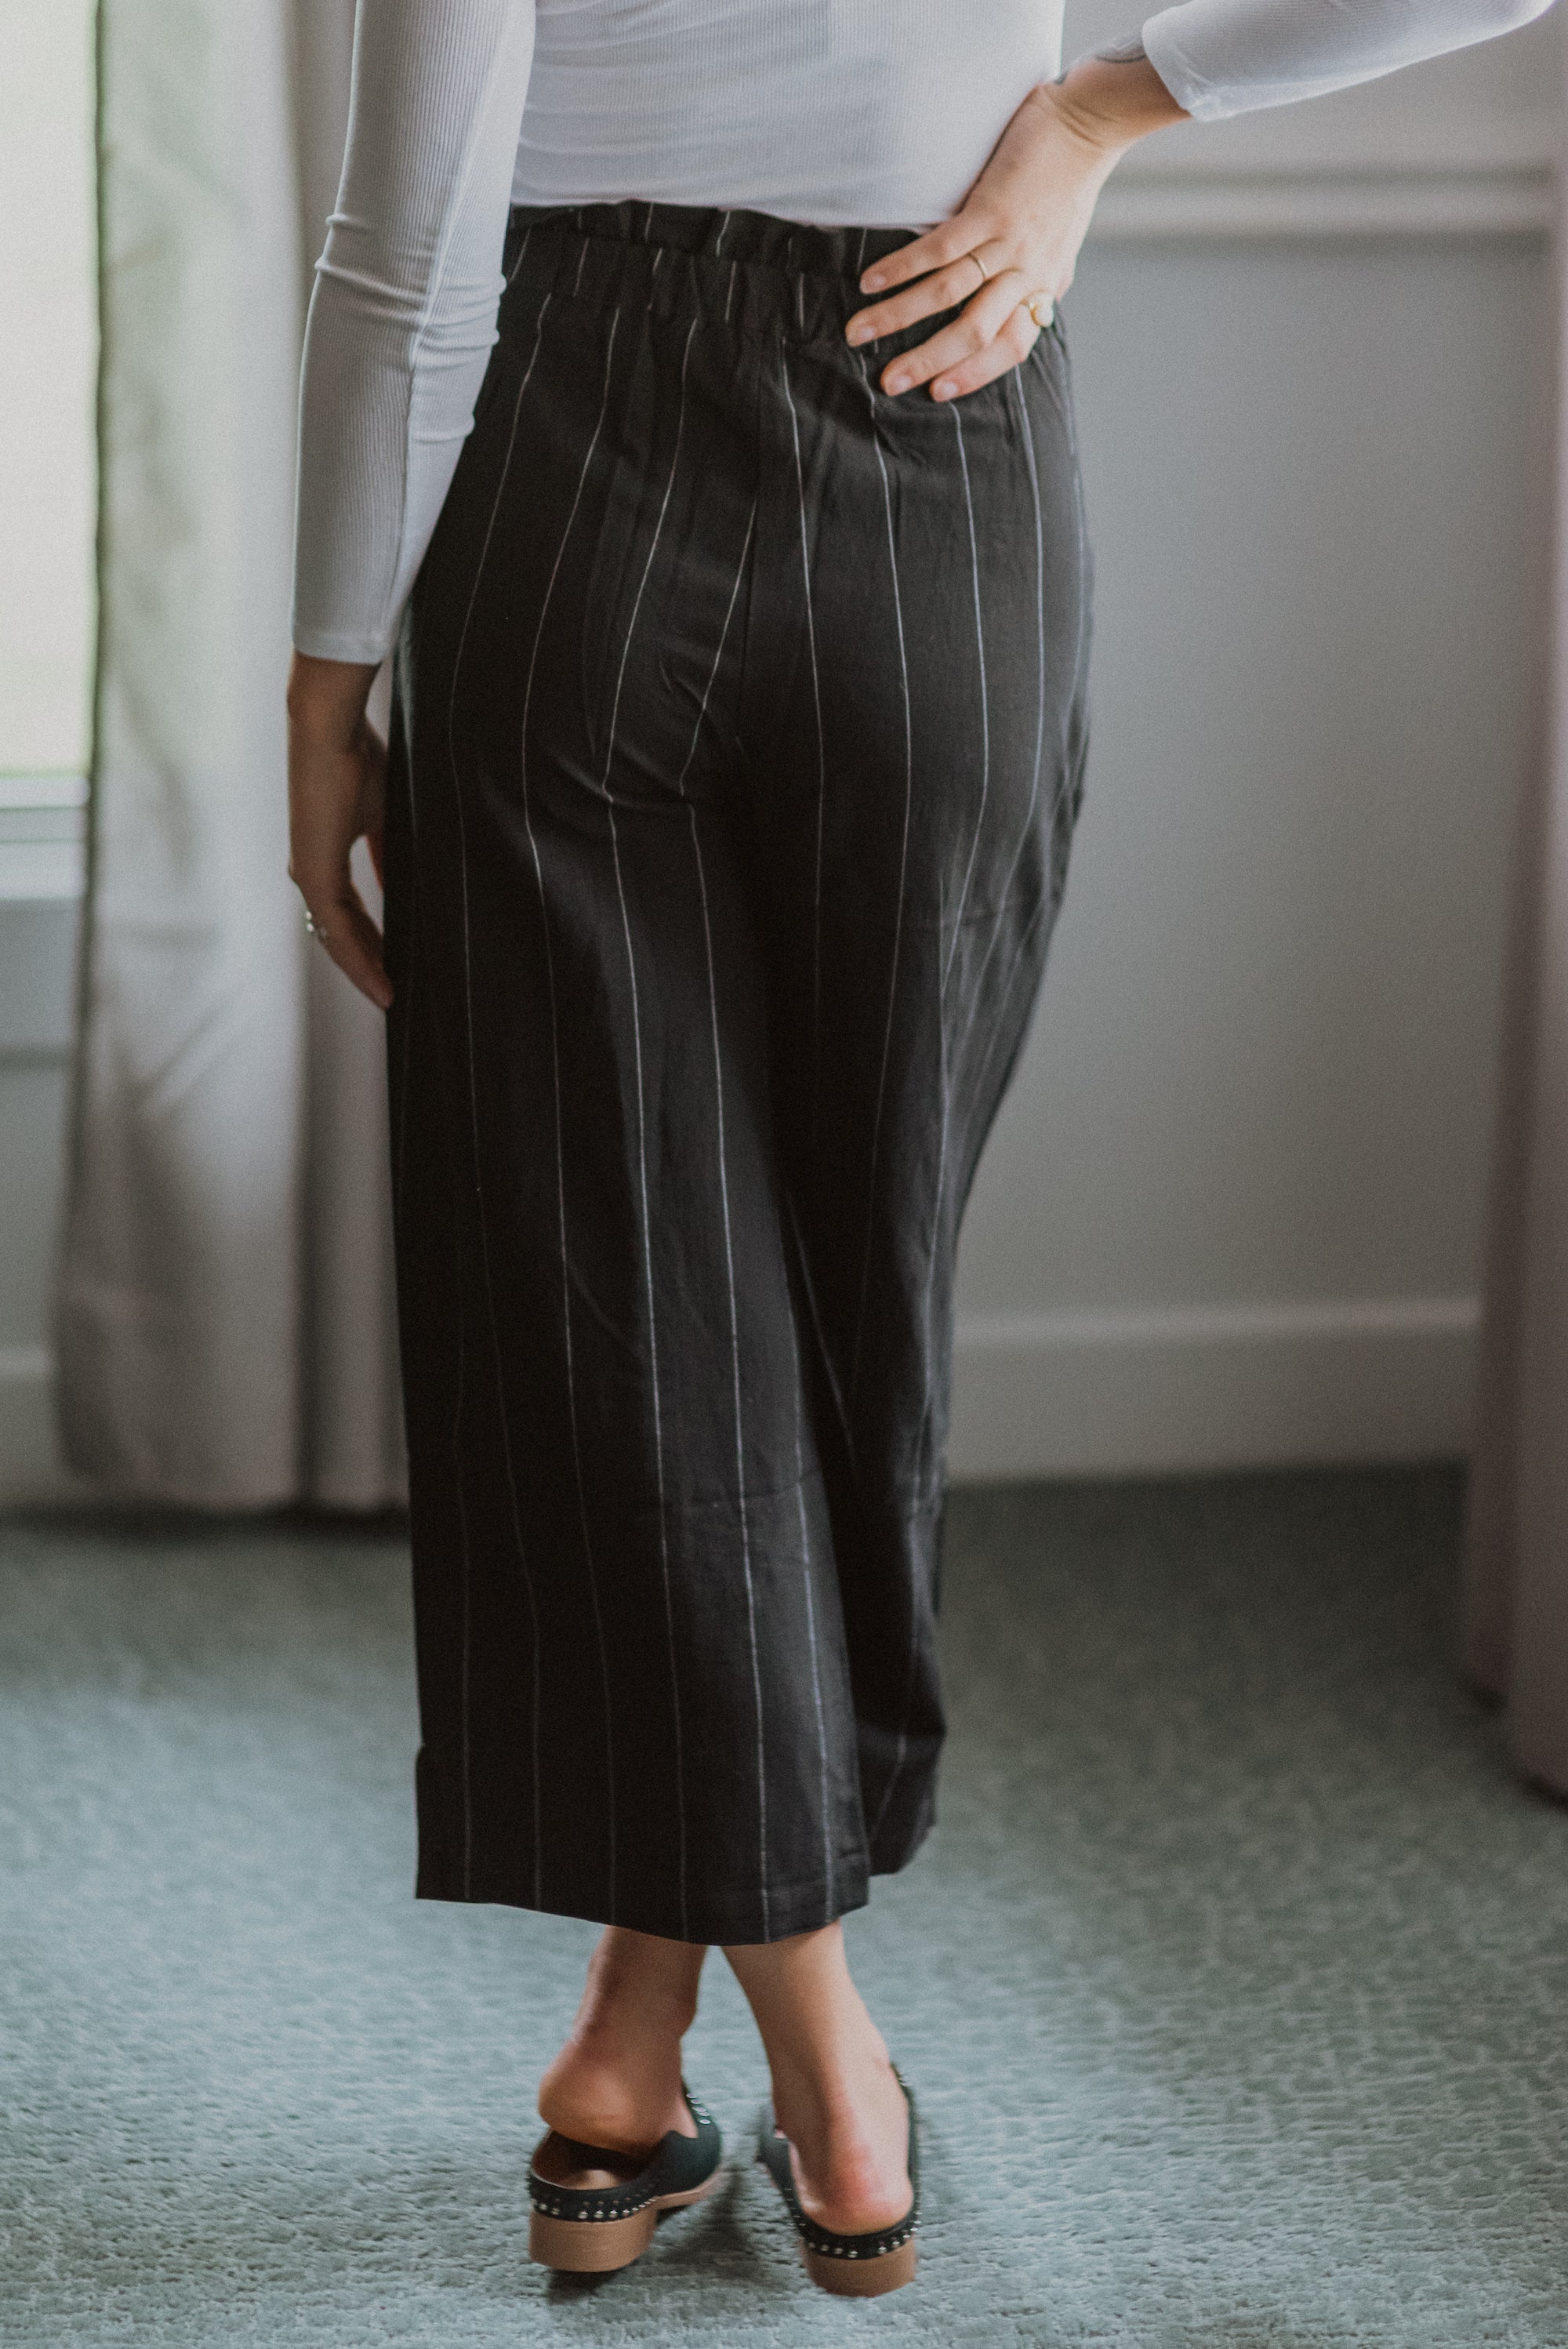 Tie It Up with a Bow Culotte Pin Striped Pants